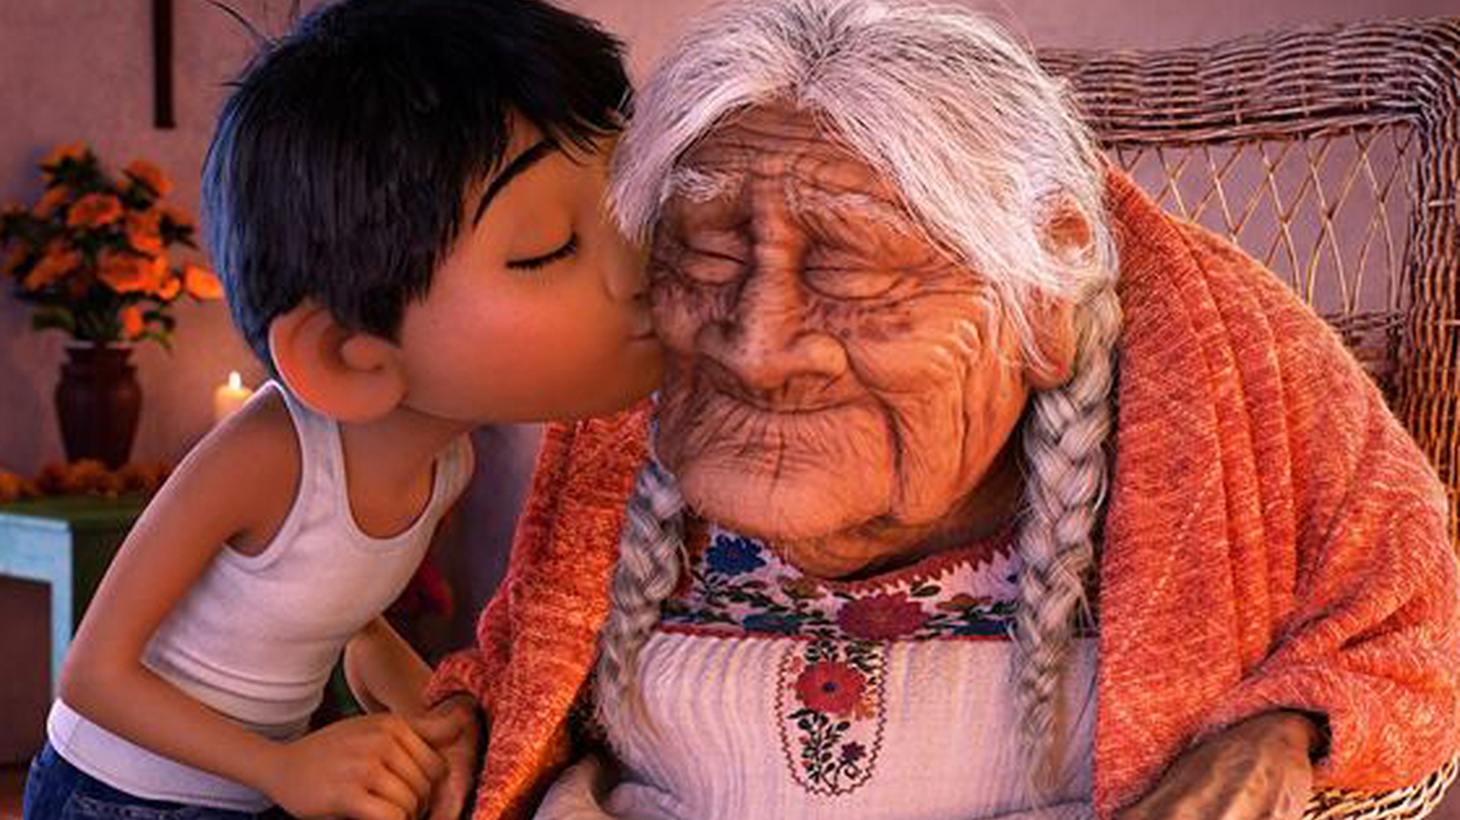 The film Coco has resonated with Latinos in the US who have been battered by the anti-Latino rhetoric coming out of the White House. Can a Pixar hit and it's loveable protagonist boost a community's self esteem?